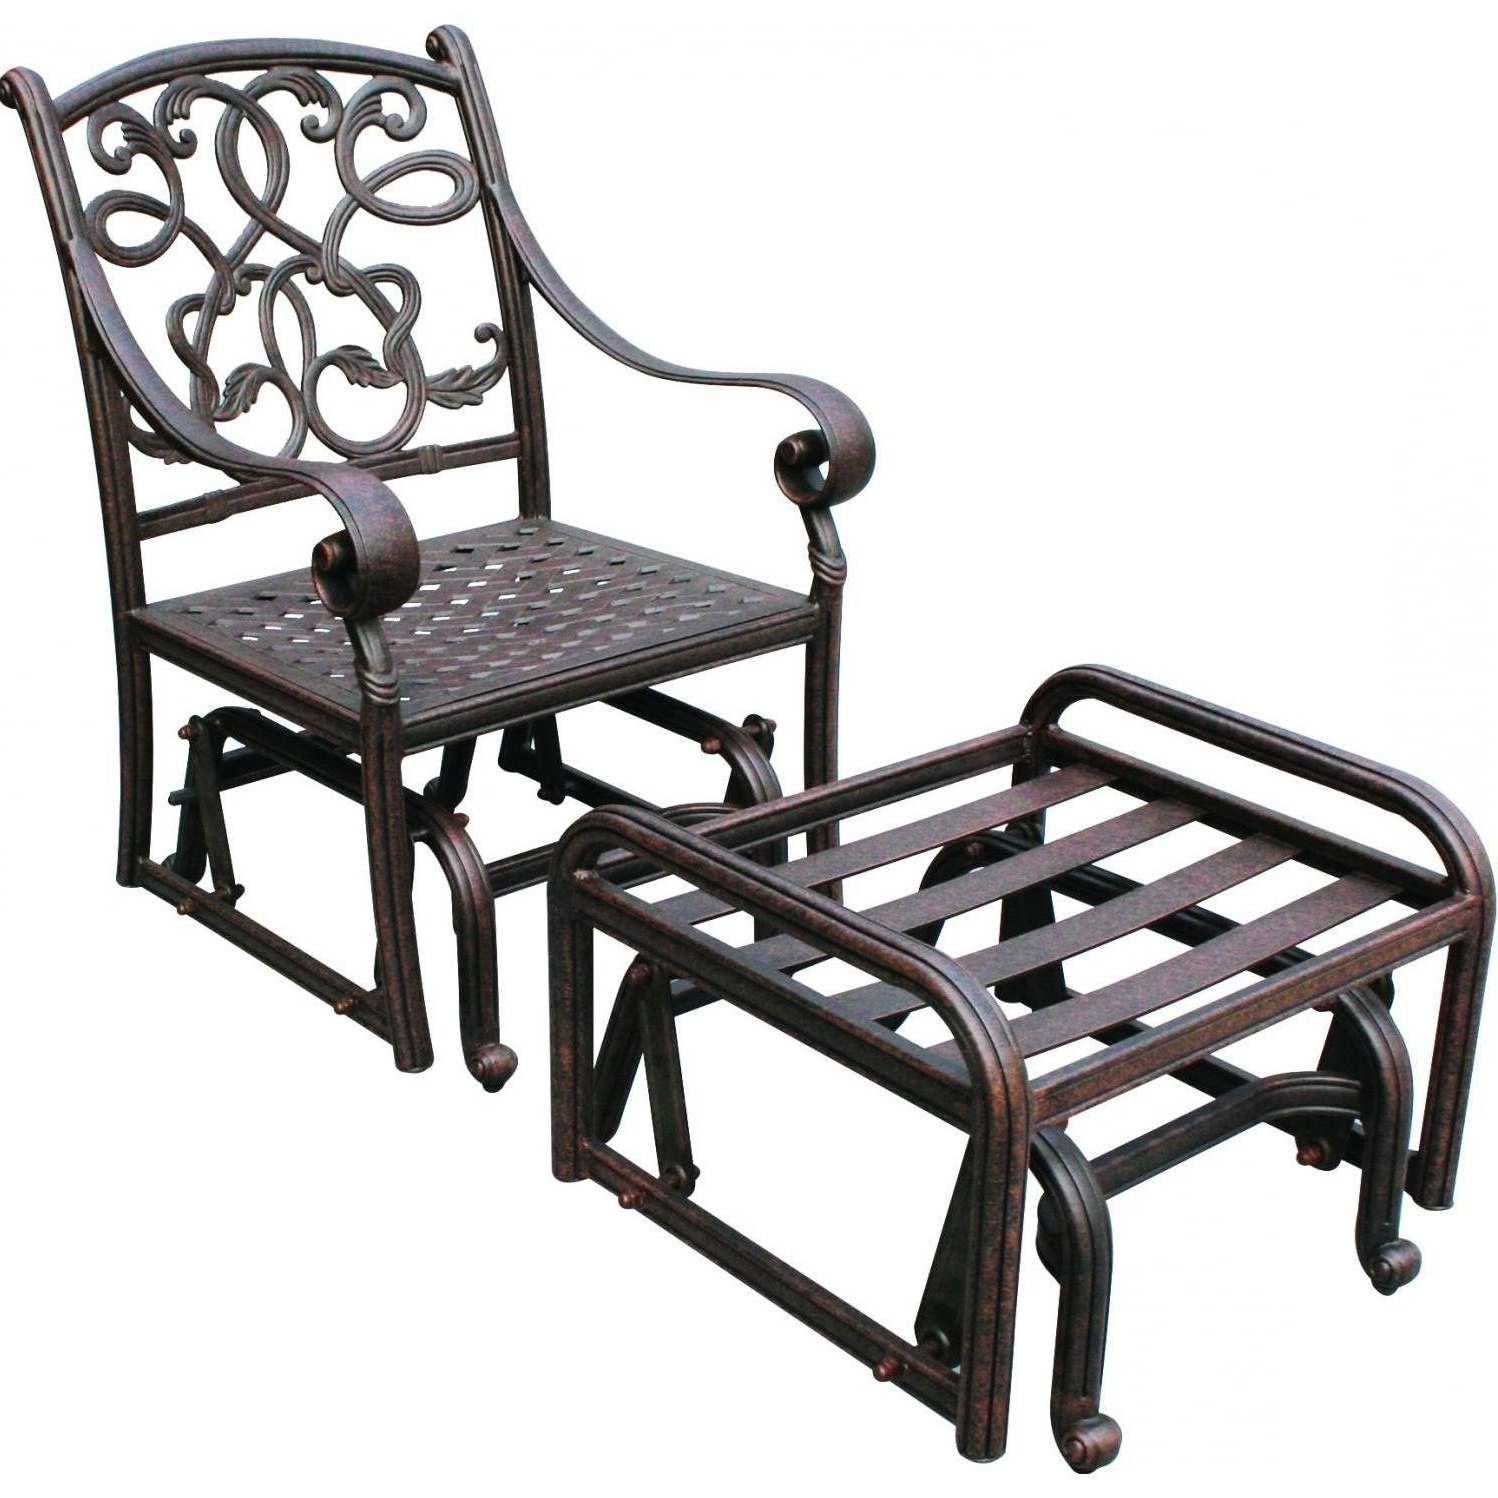 Patio Rocking Chairs With Ottoman With Best And Newest Chair : Rocker Plans Wicker Resin Lounge Sling Patio Furniture (View 8 of 15)